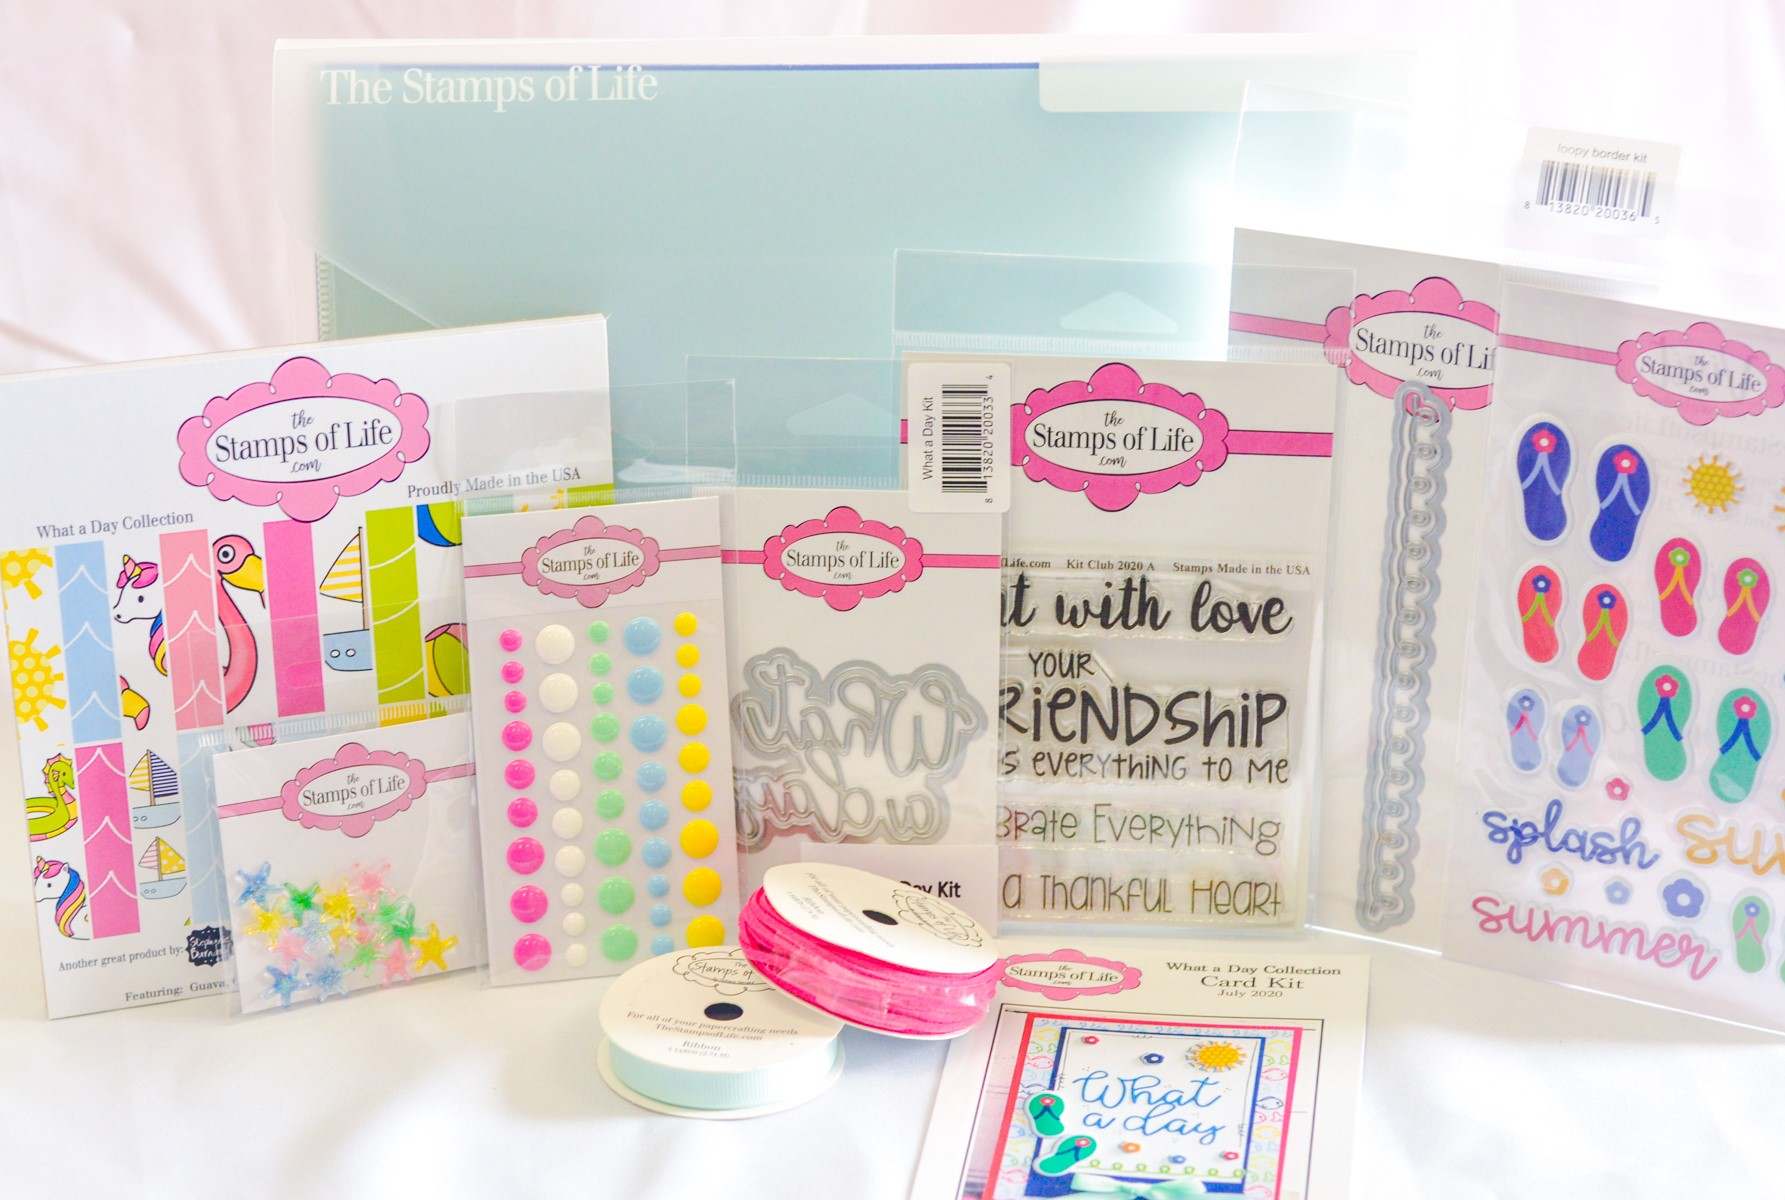 The Stamps of Life July 2020 Card Kit Contents